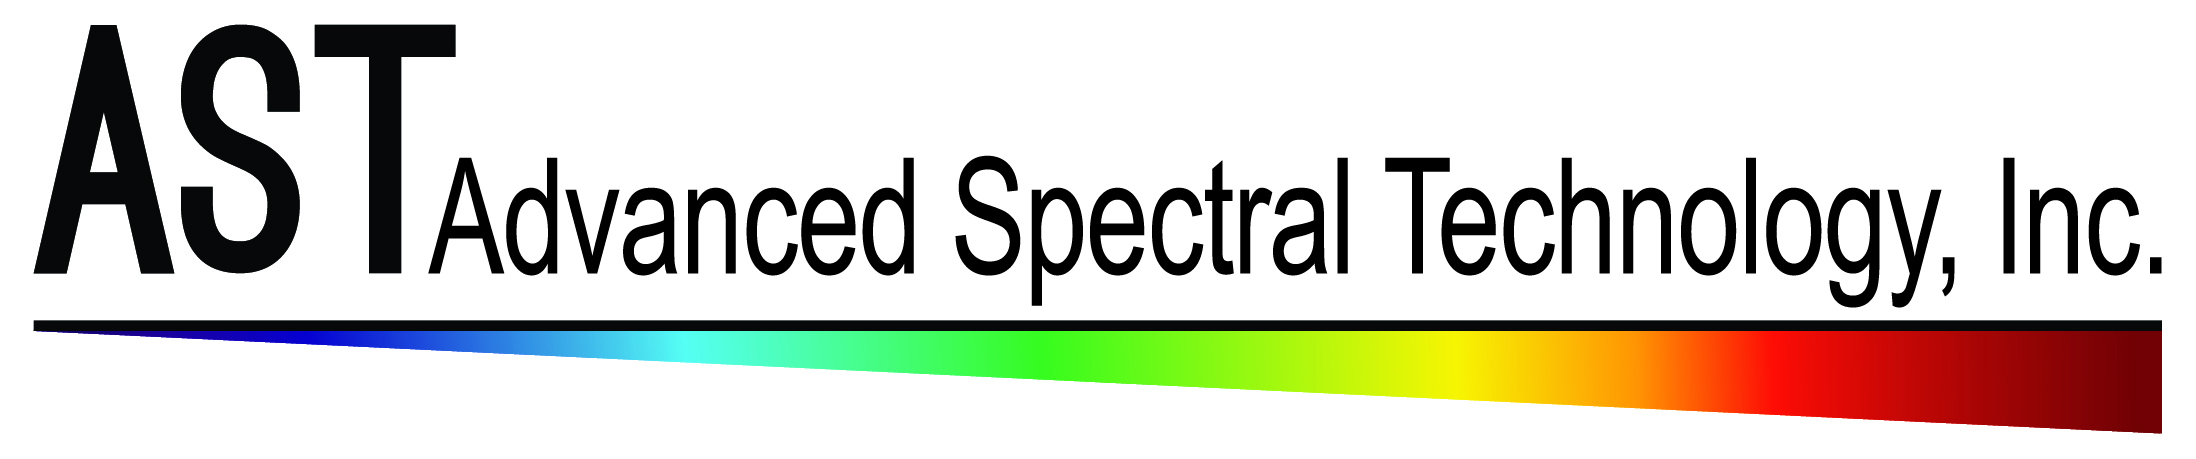 Advanced Spectral Technology, Inc.